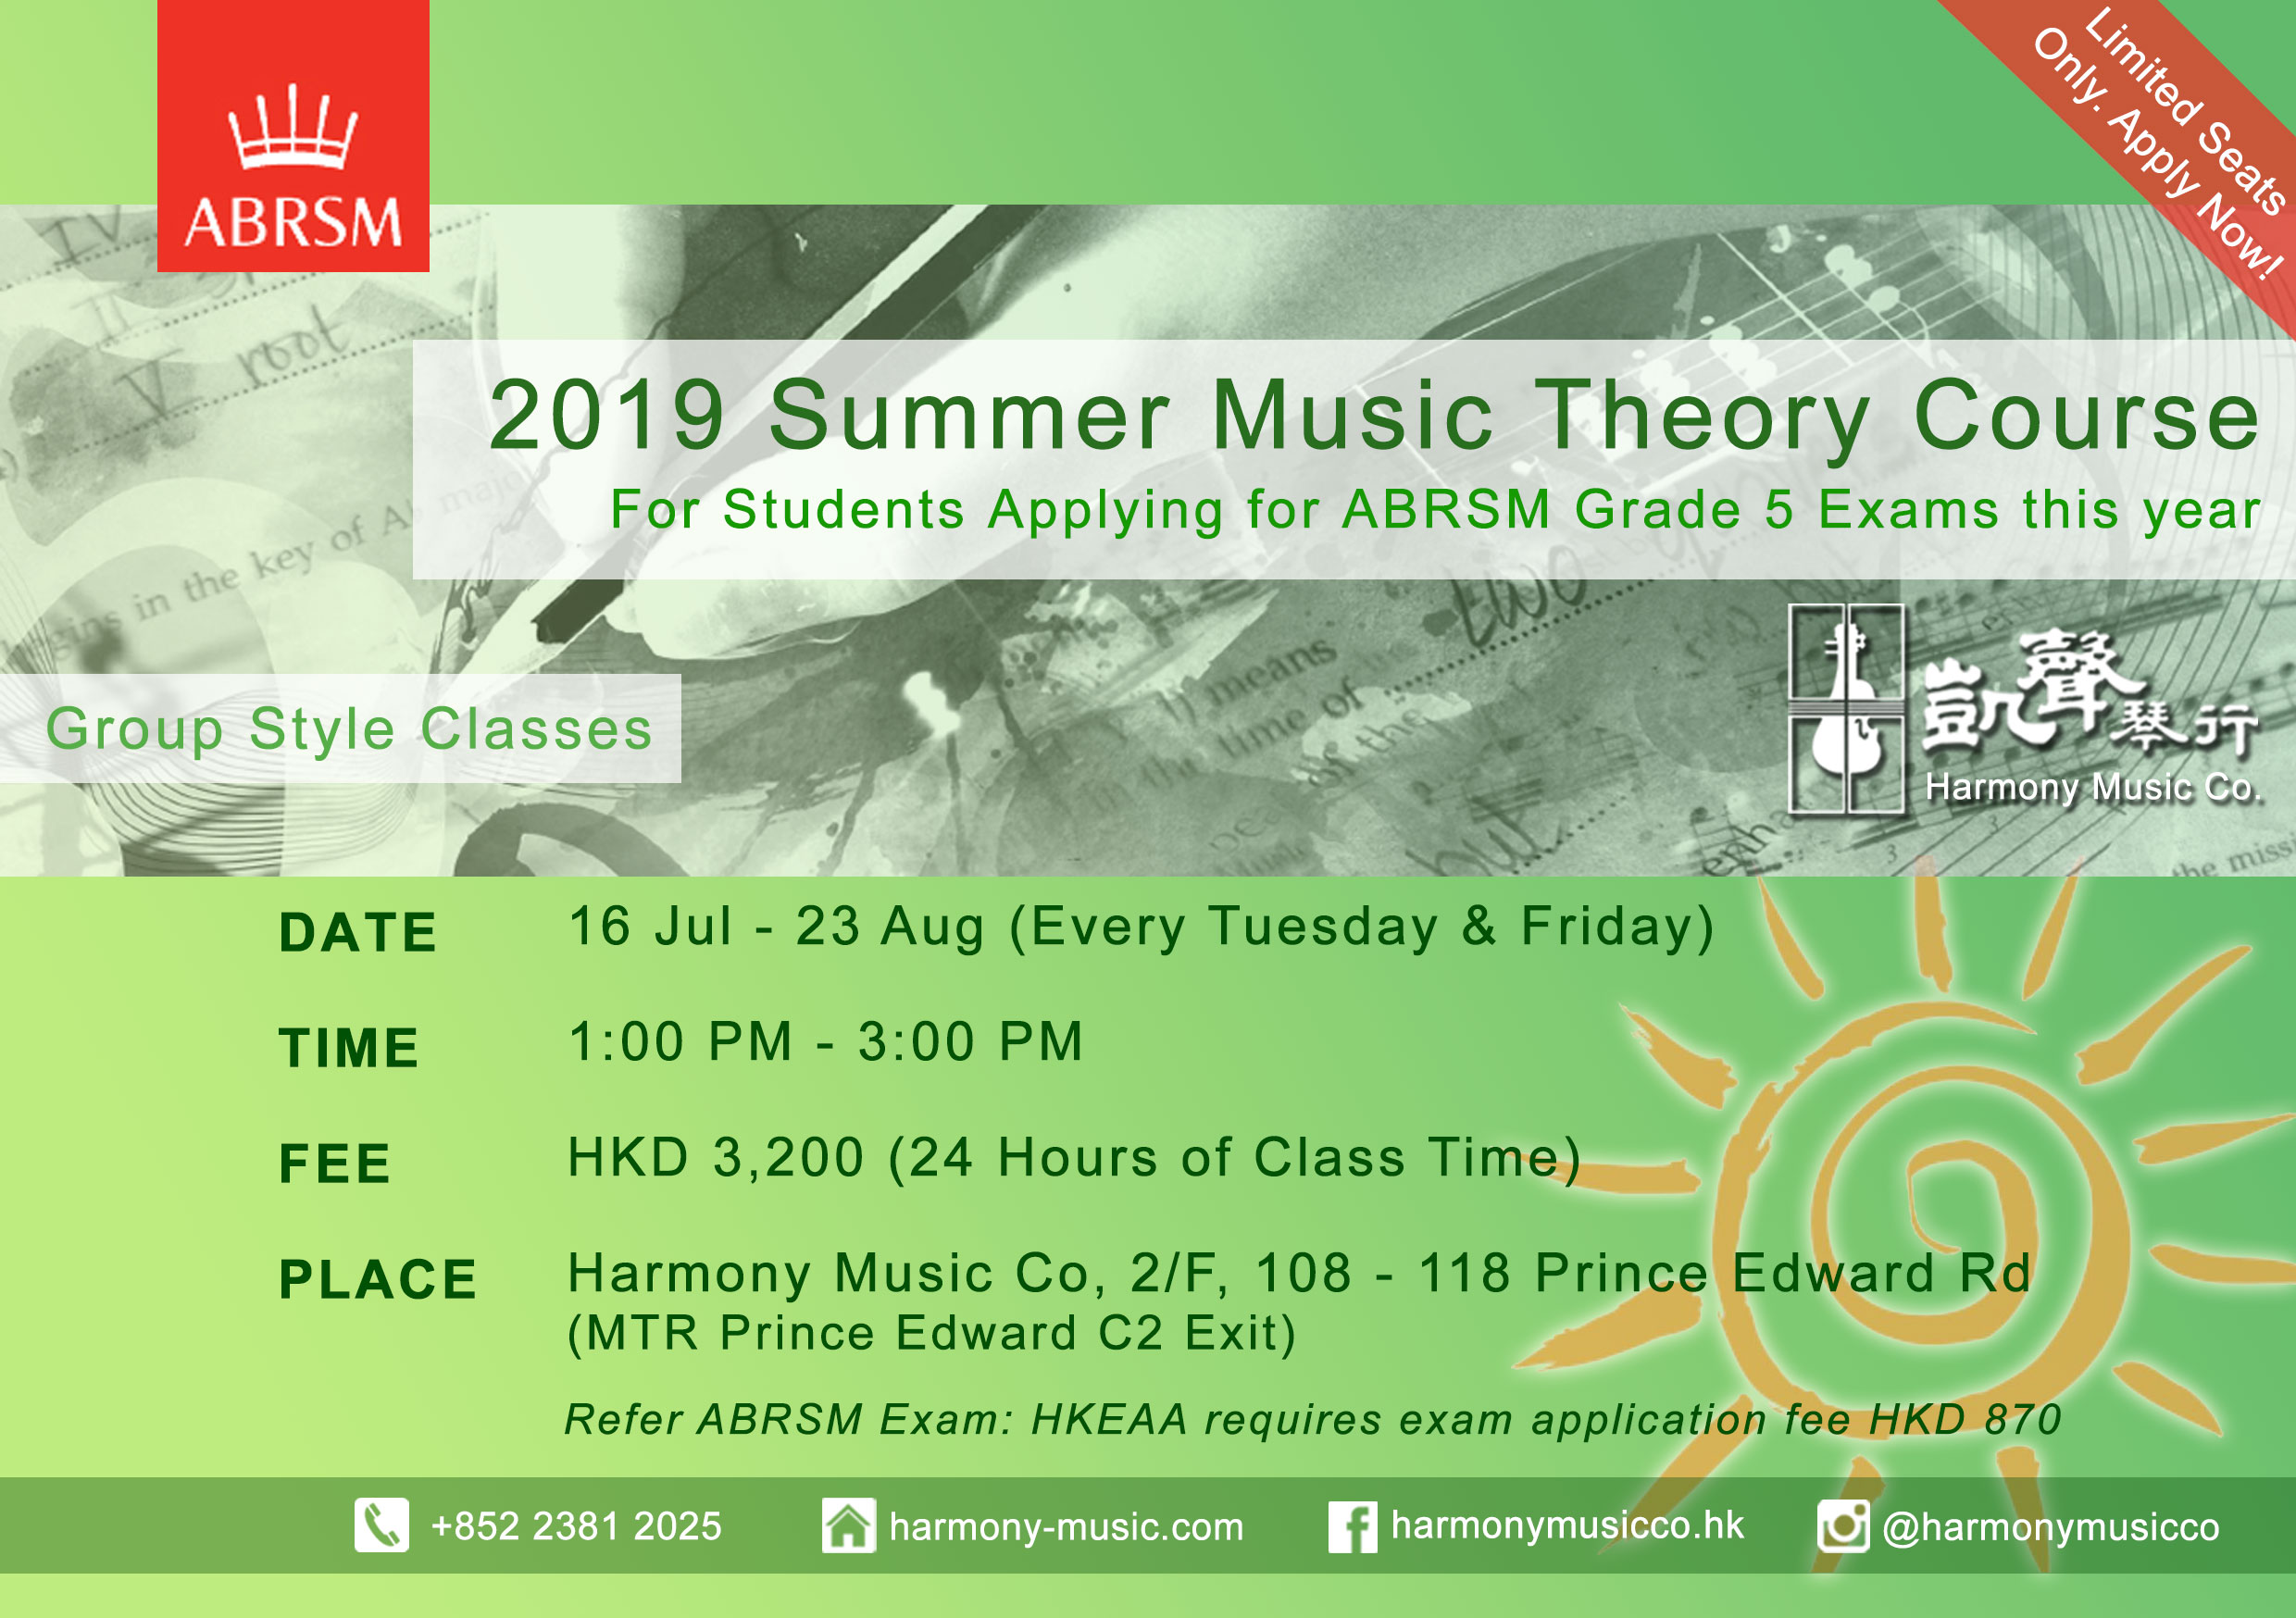 2019 ABRSM Music Theory Summer Course